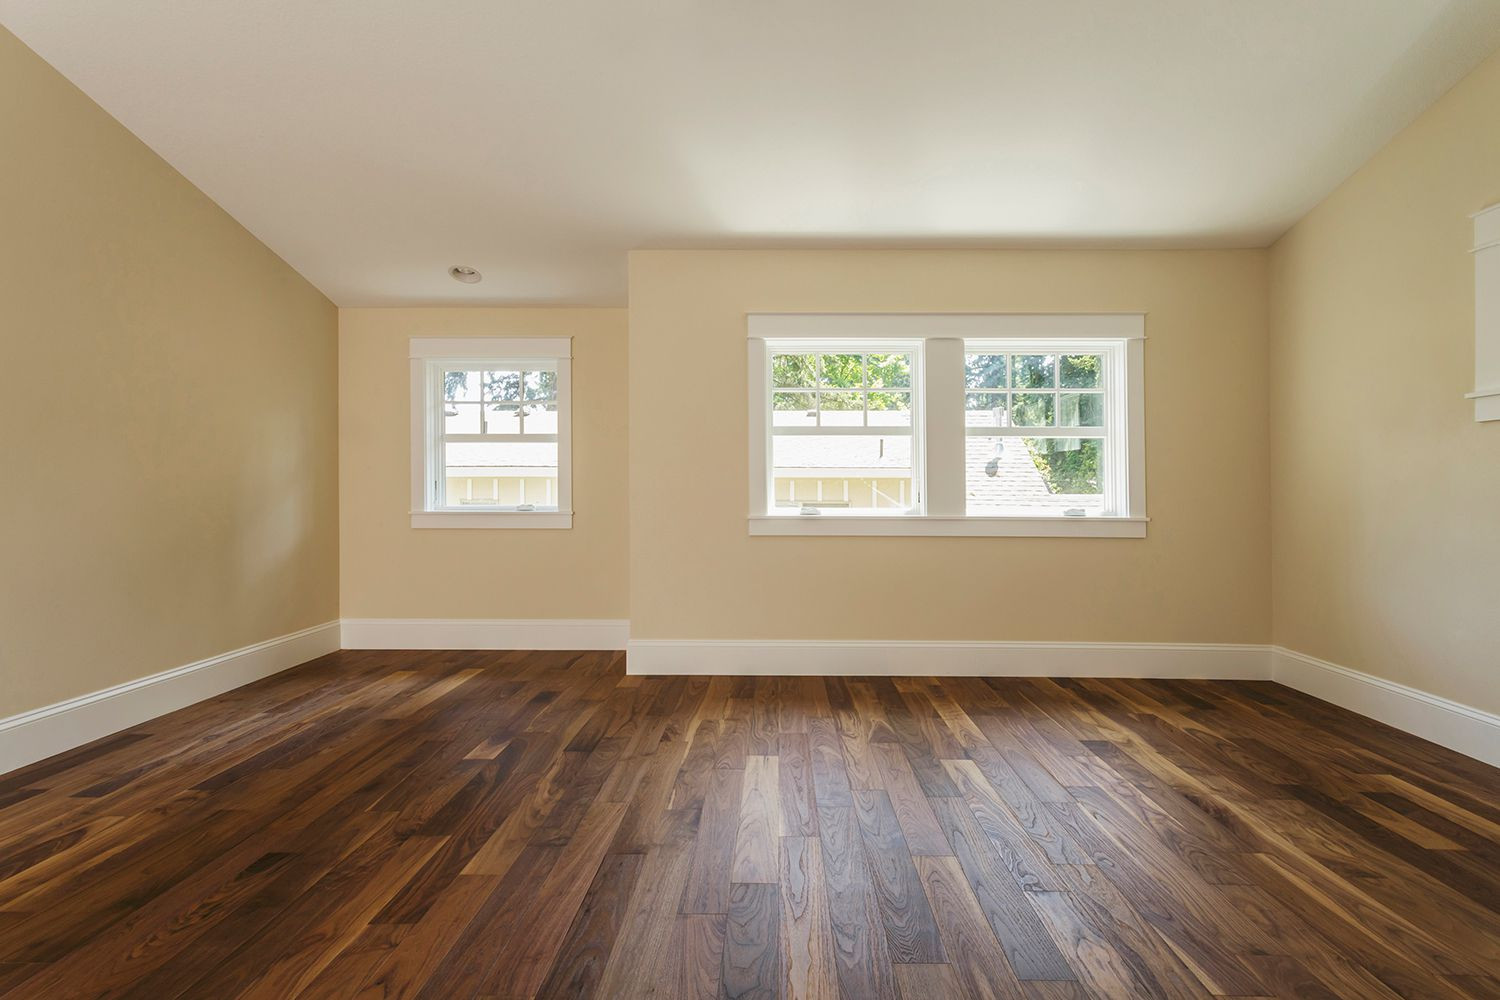 hardwood floor direction change of how to install shoe molding or quarter round molding throughout gettyimages 482143001 5b4b783bc9e77c0037efbcf6